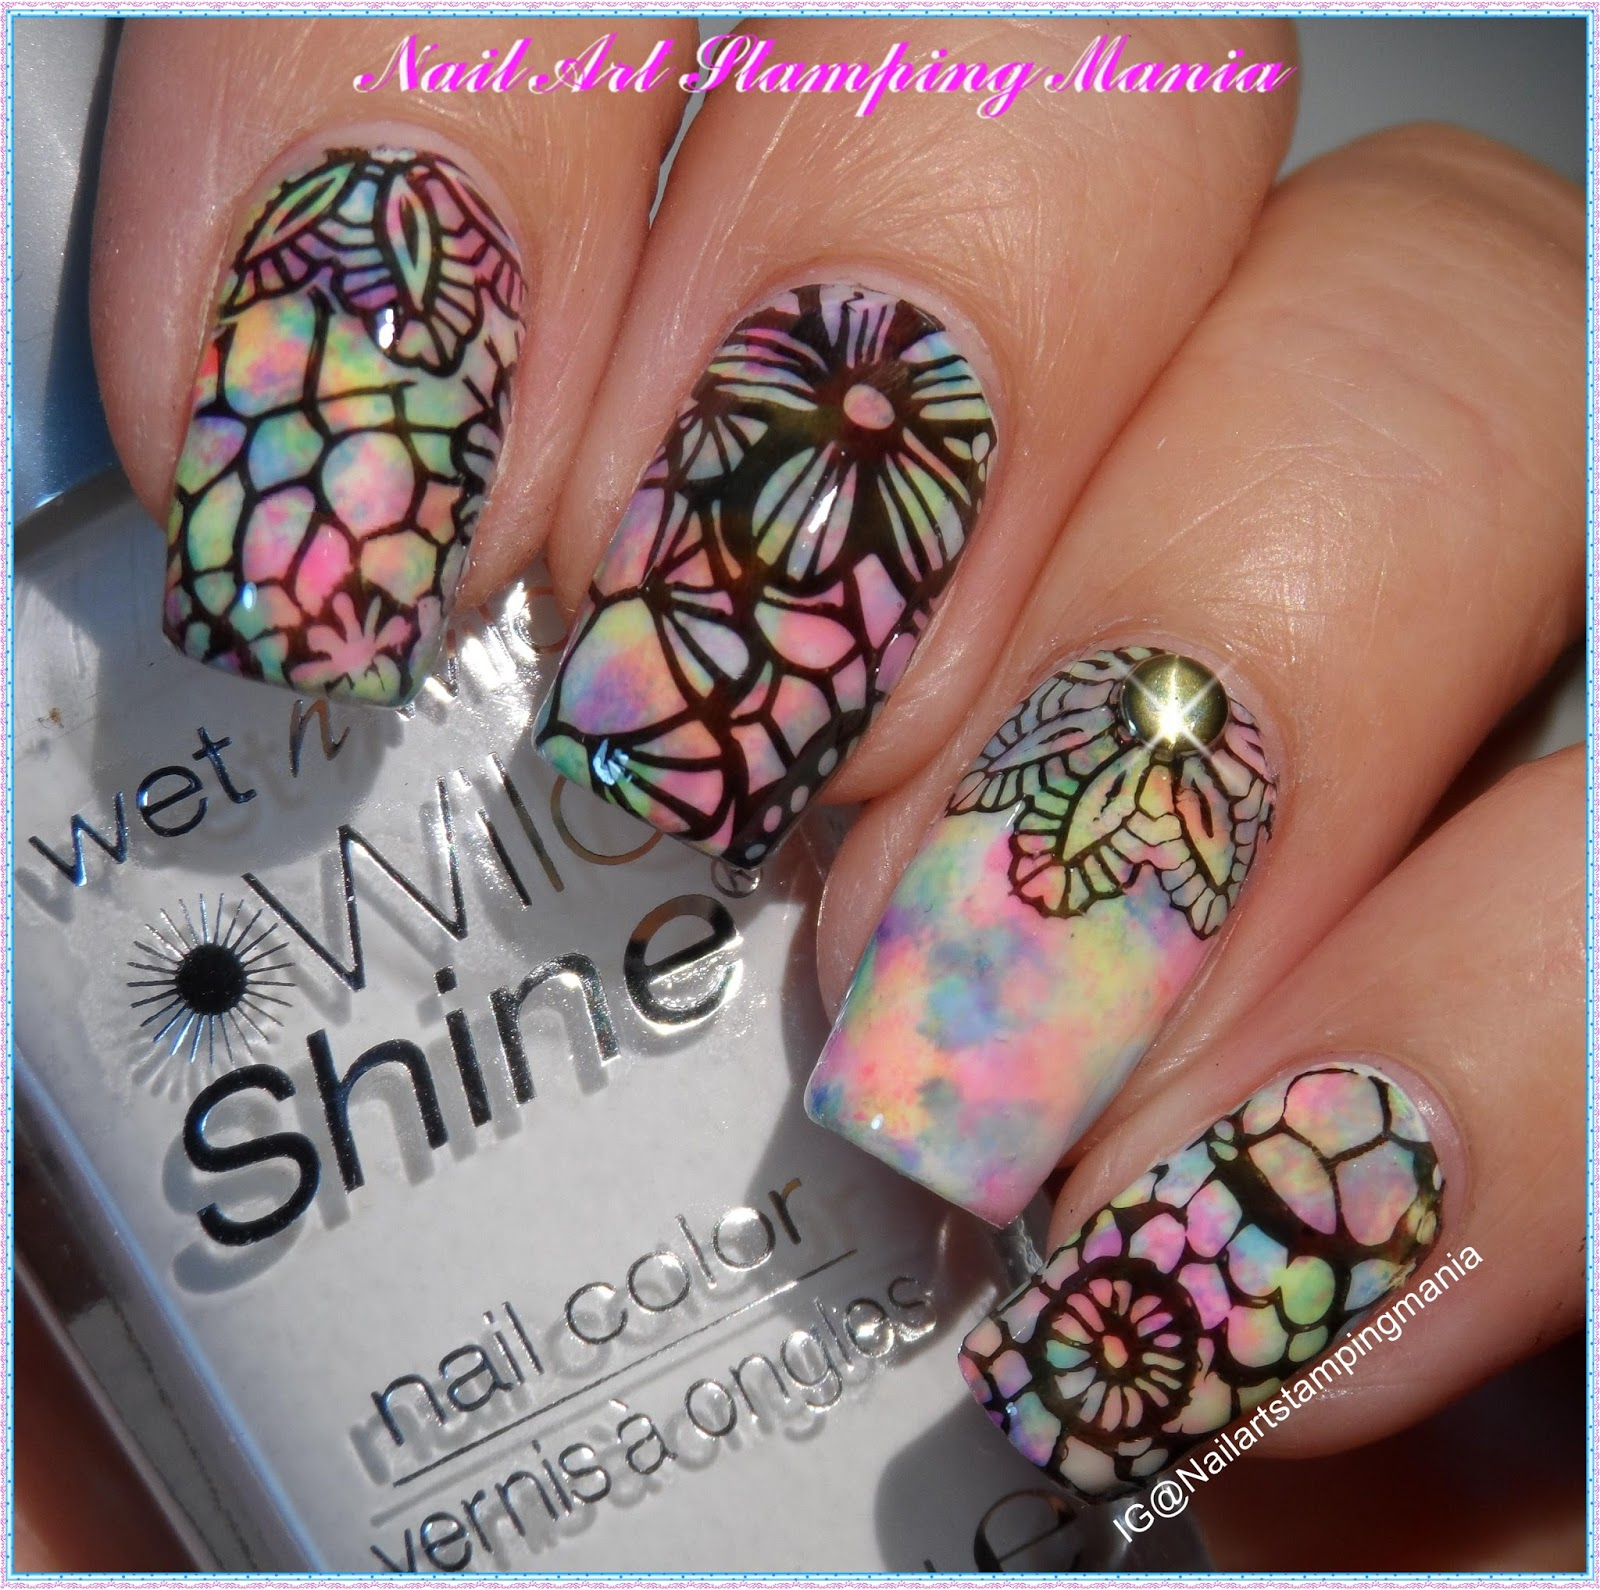 Nail Art Stamping Mania on Feedspot - Rss Feed